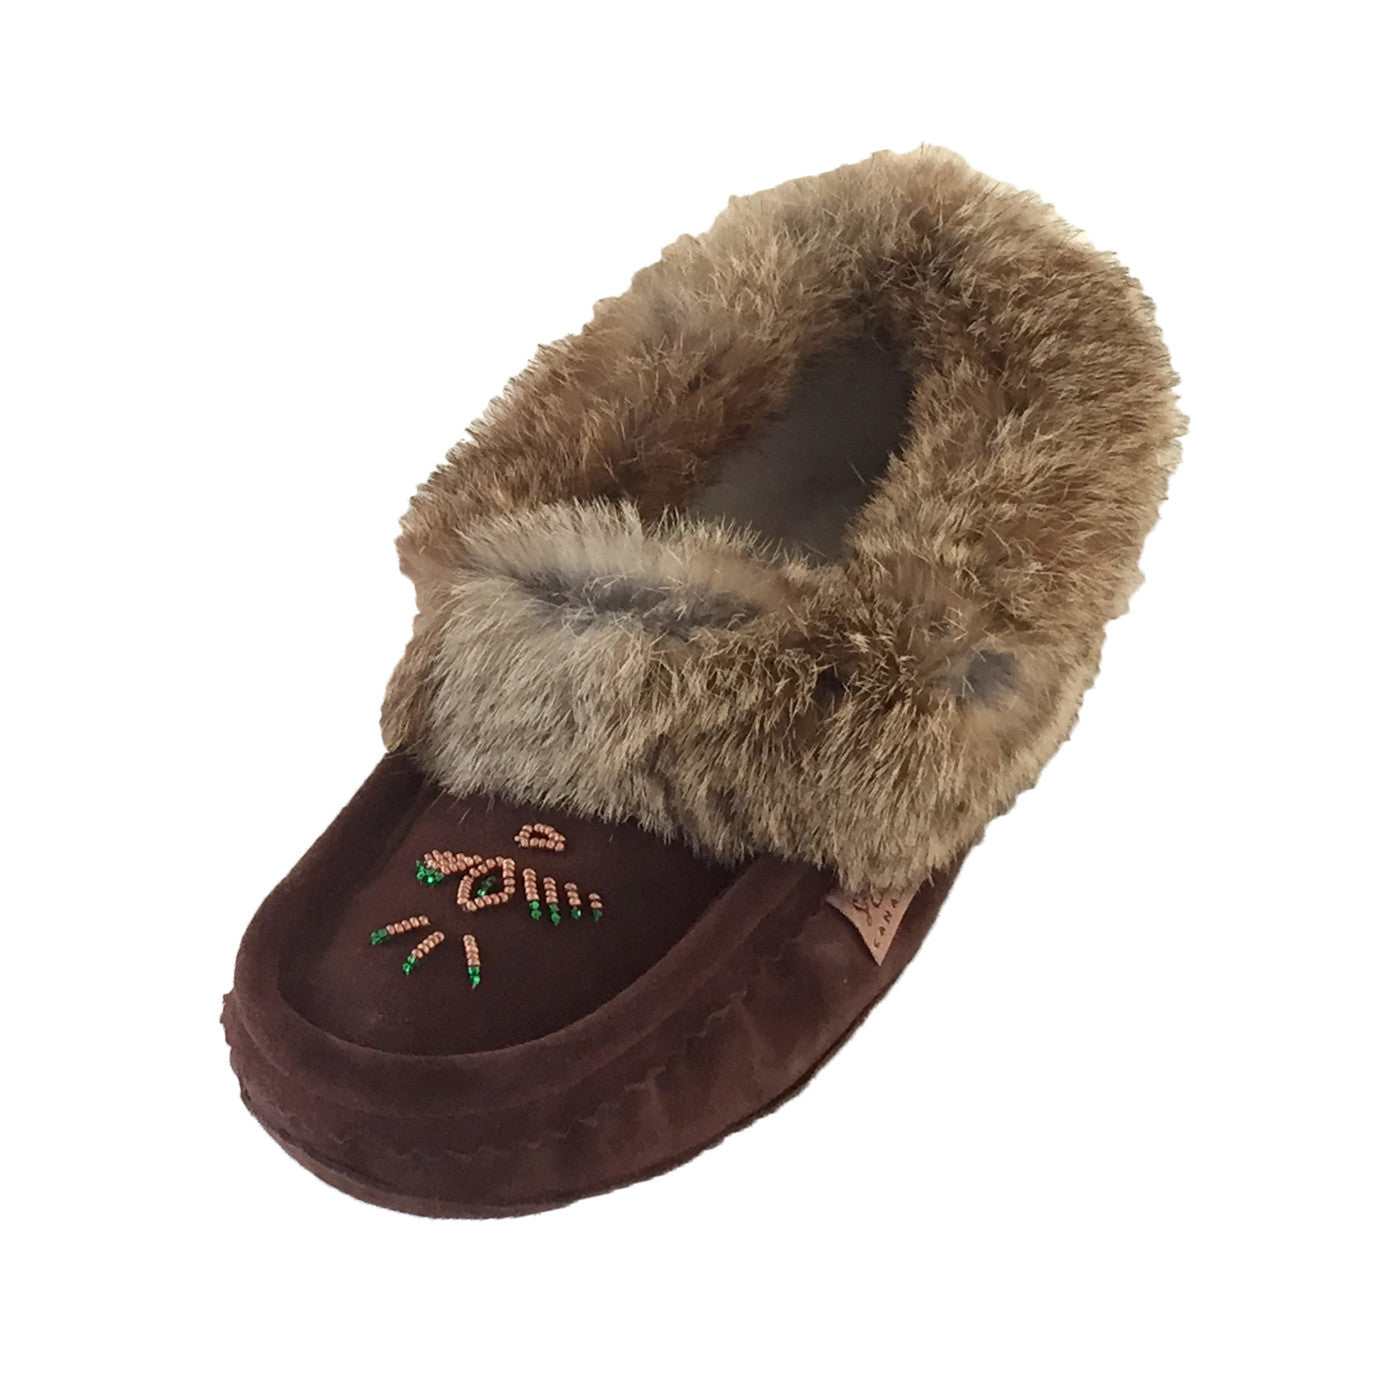 06afe0c542a Women s Fleece Lined Rabbit Fur Brown Suede Moccasins – Leather ...